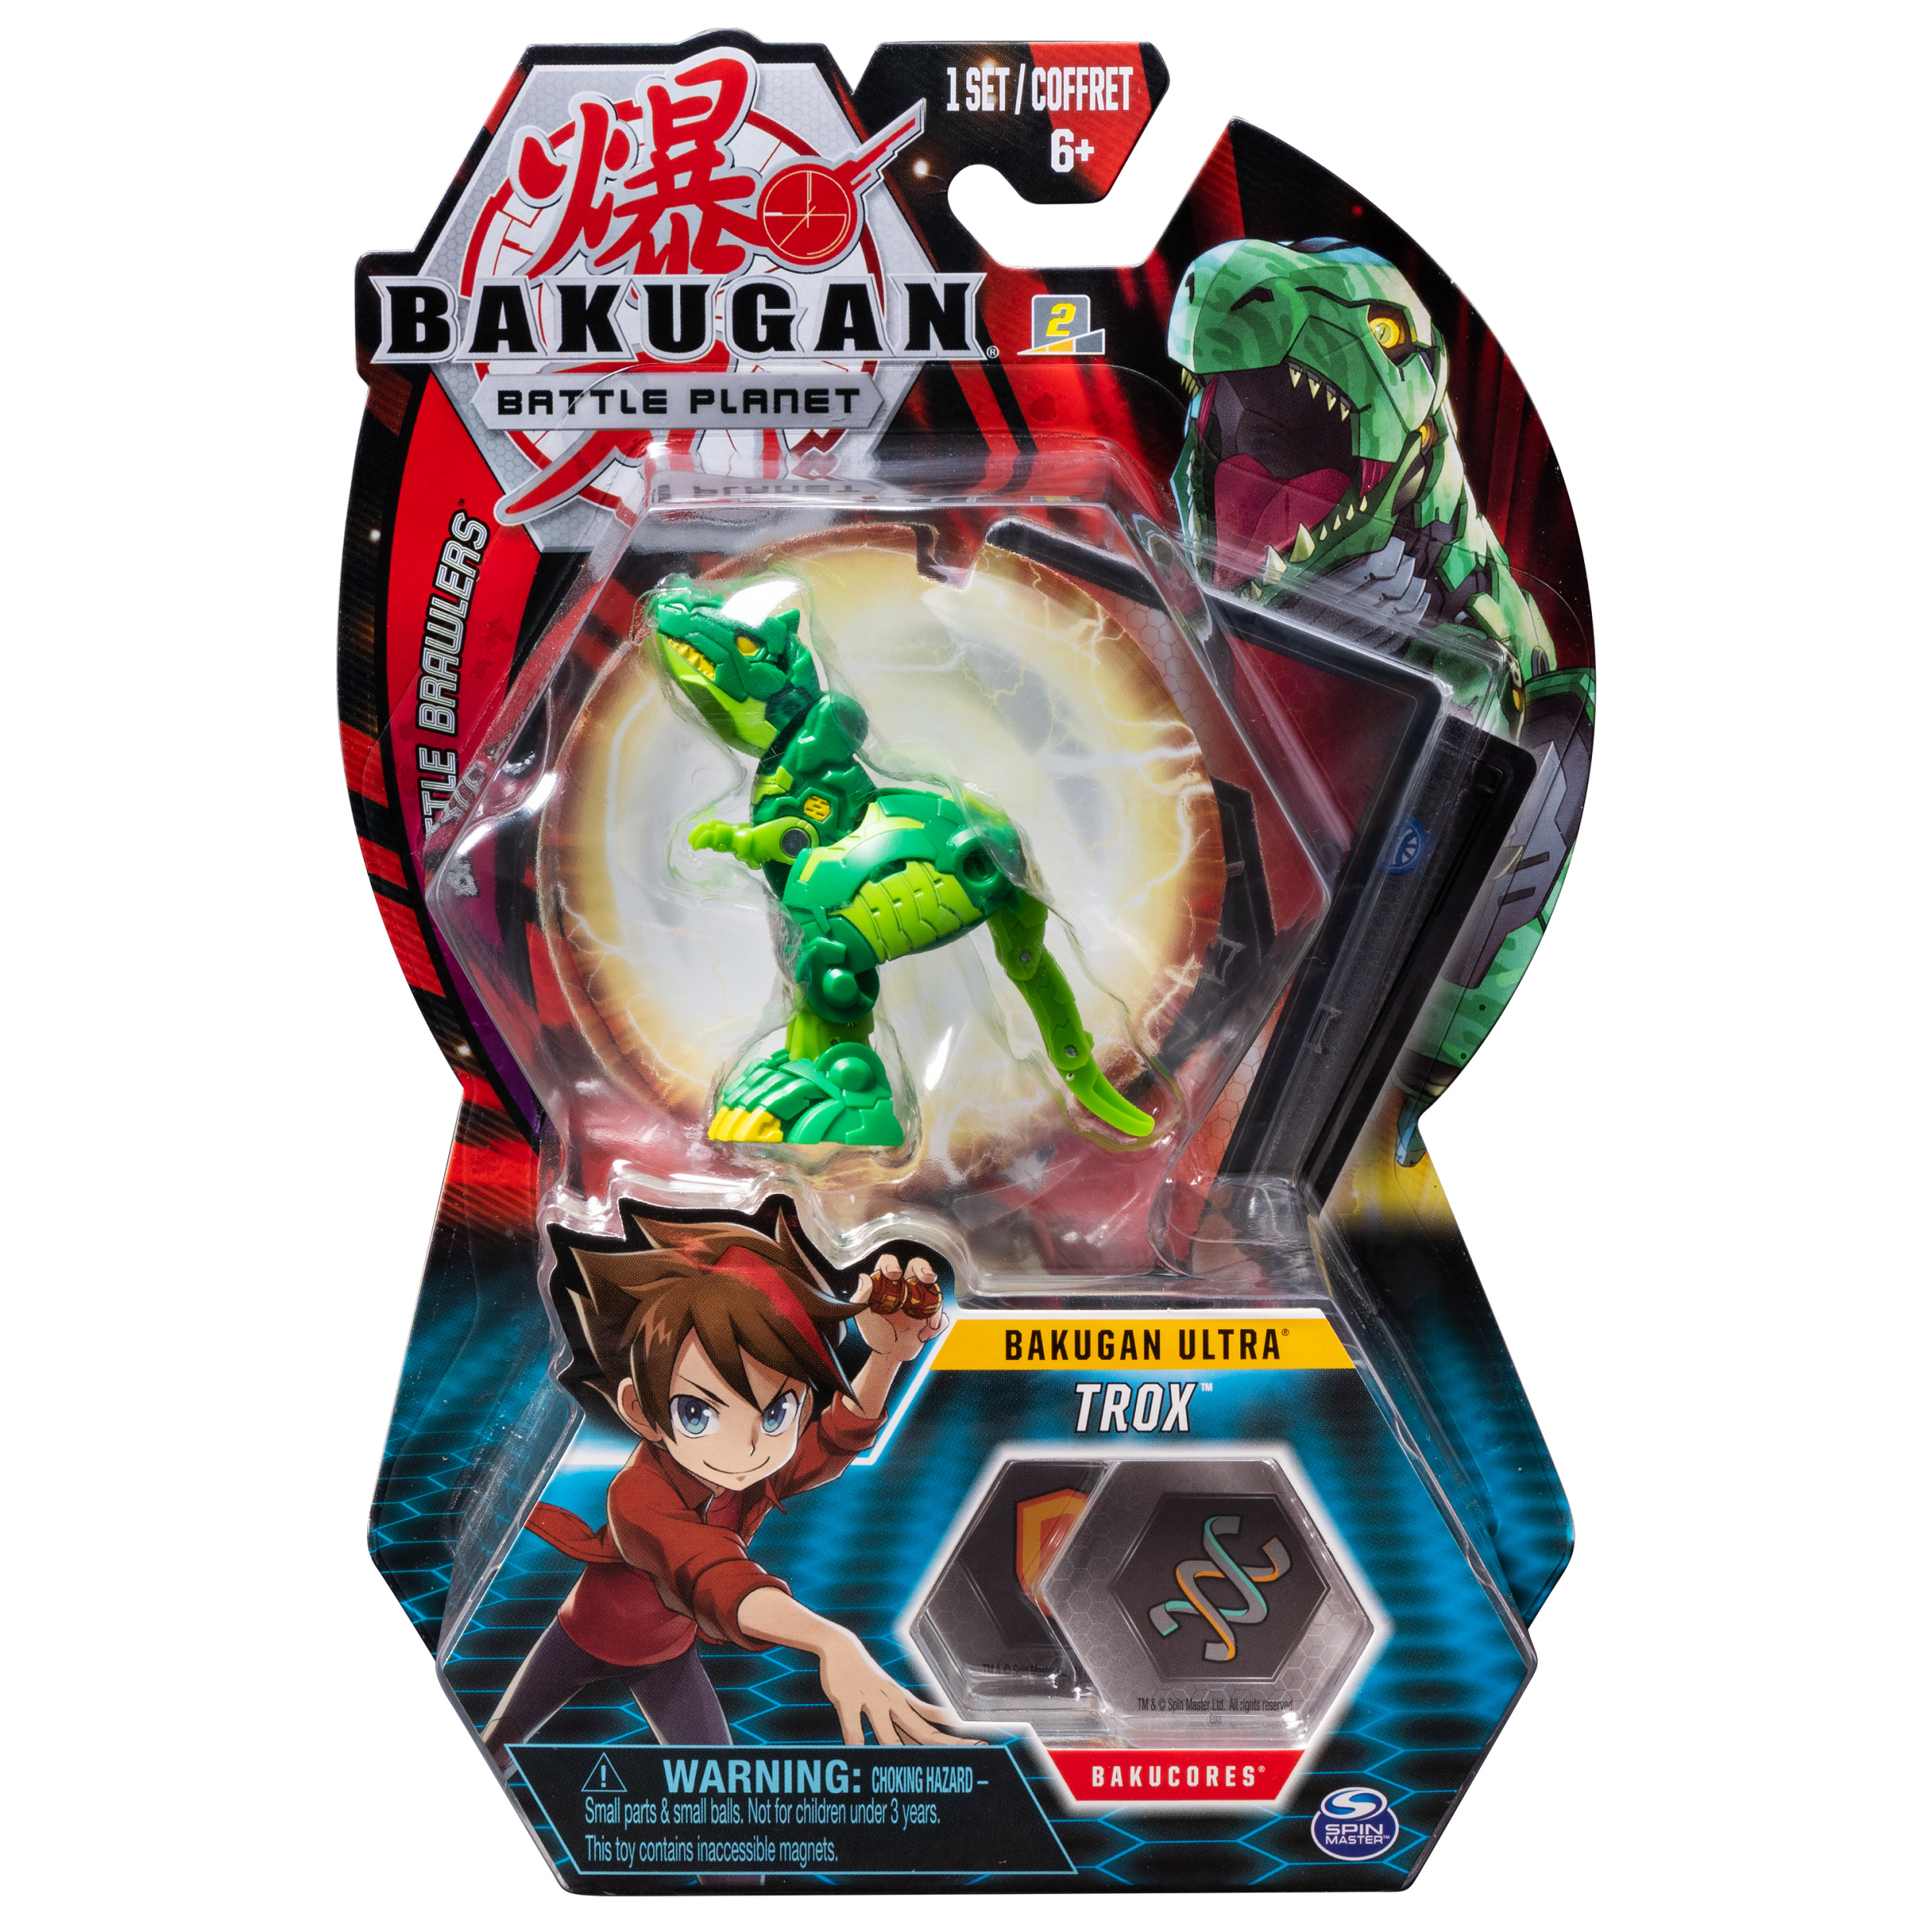 Bakugan Ultra, Trox, 3-inch Collectible Action Figure and Trading Card, for Ages 6 and Up